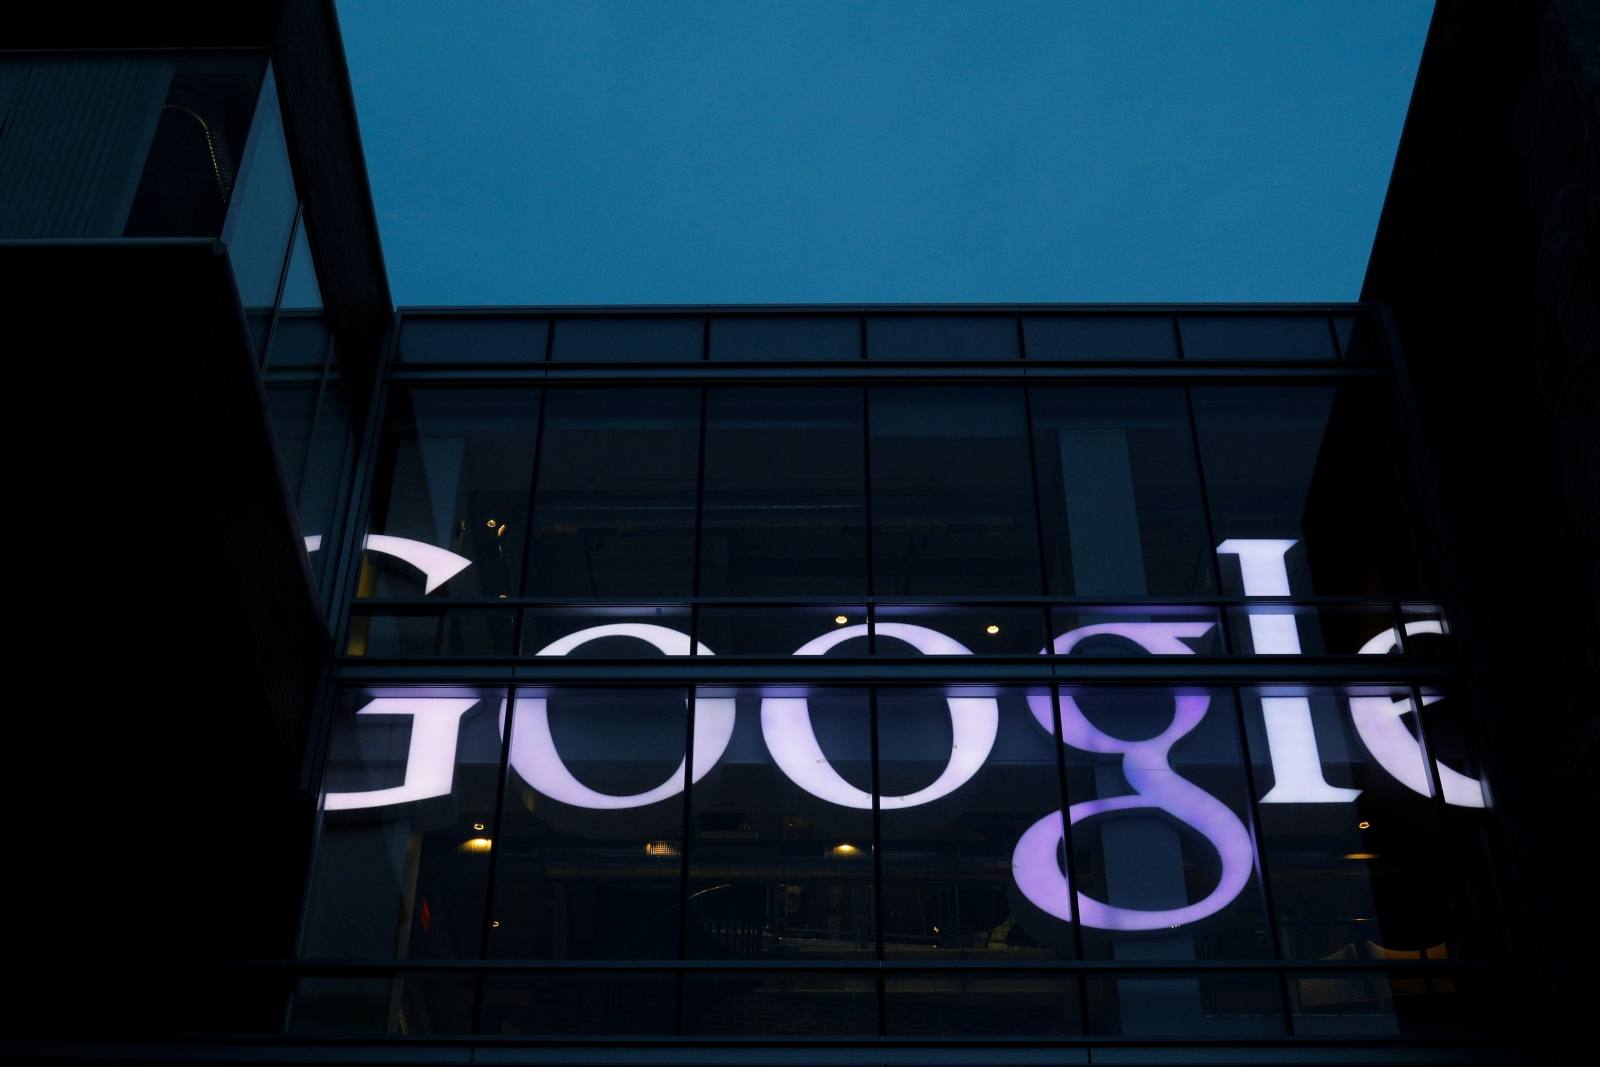 Google spends millions on academic research to influence opinion, says watchdog